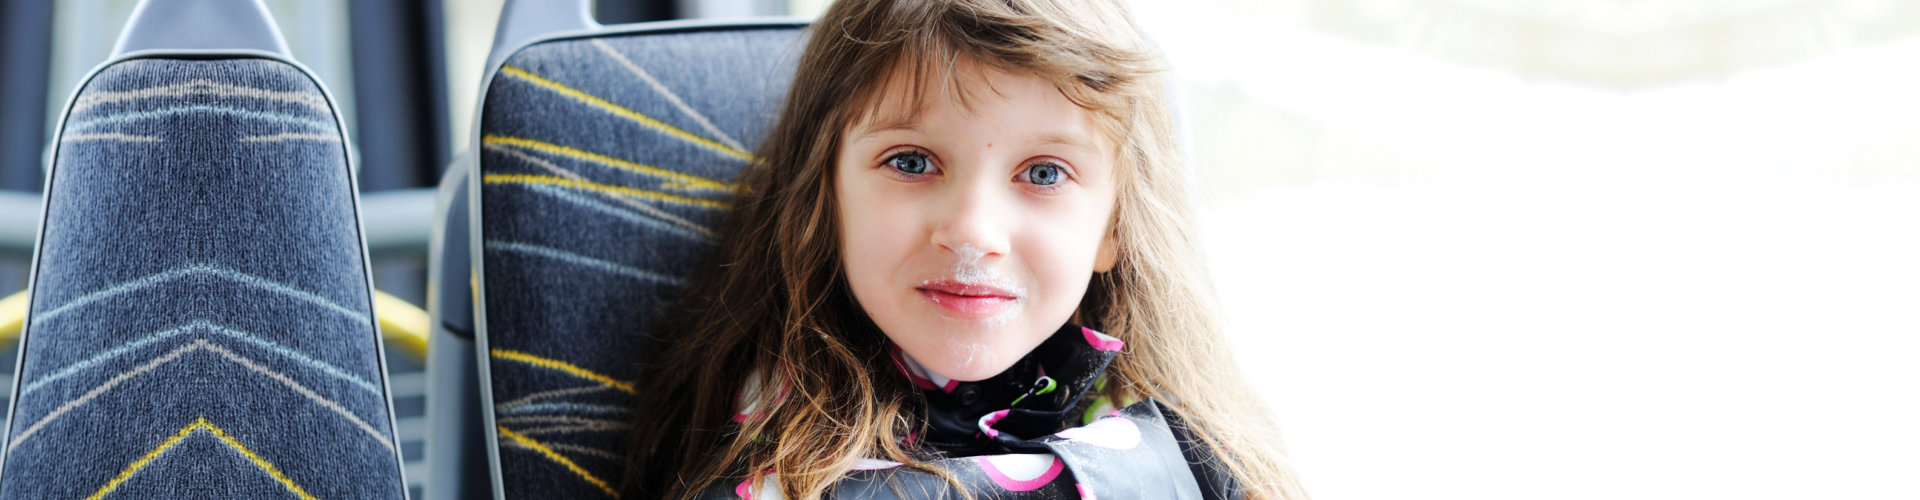 young girl sitting in the bus